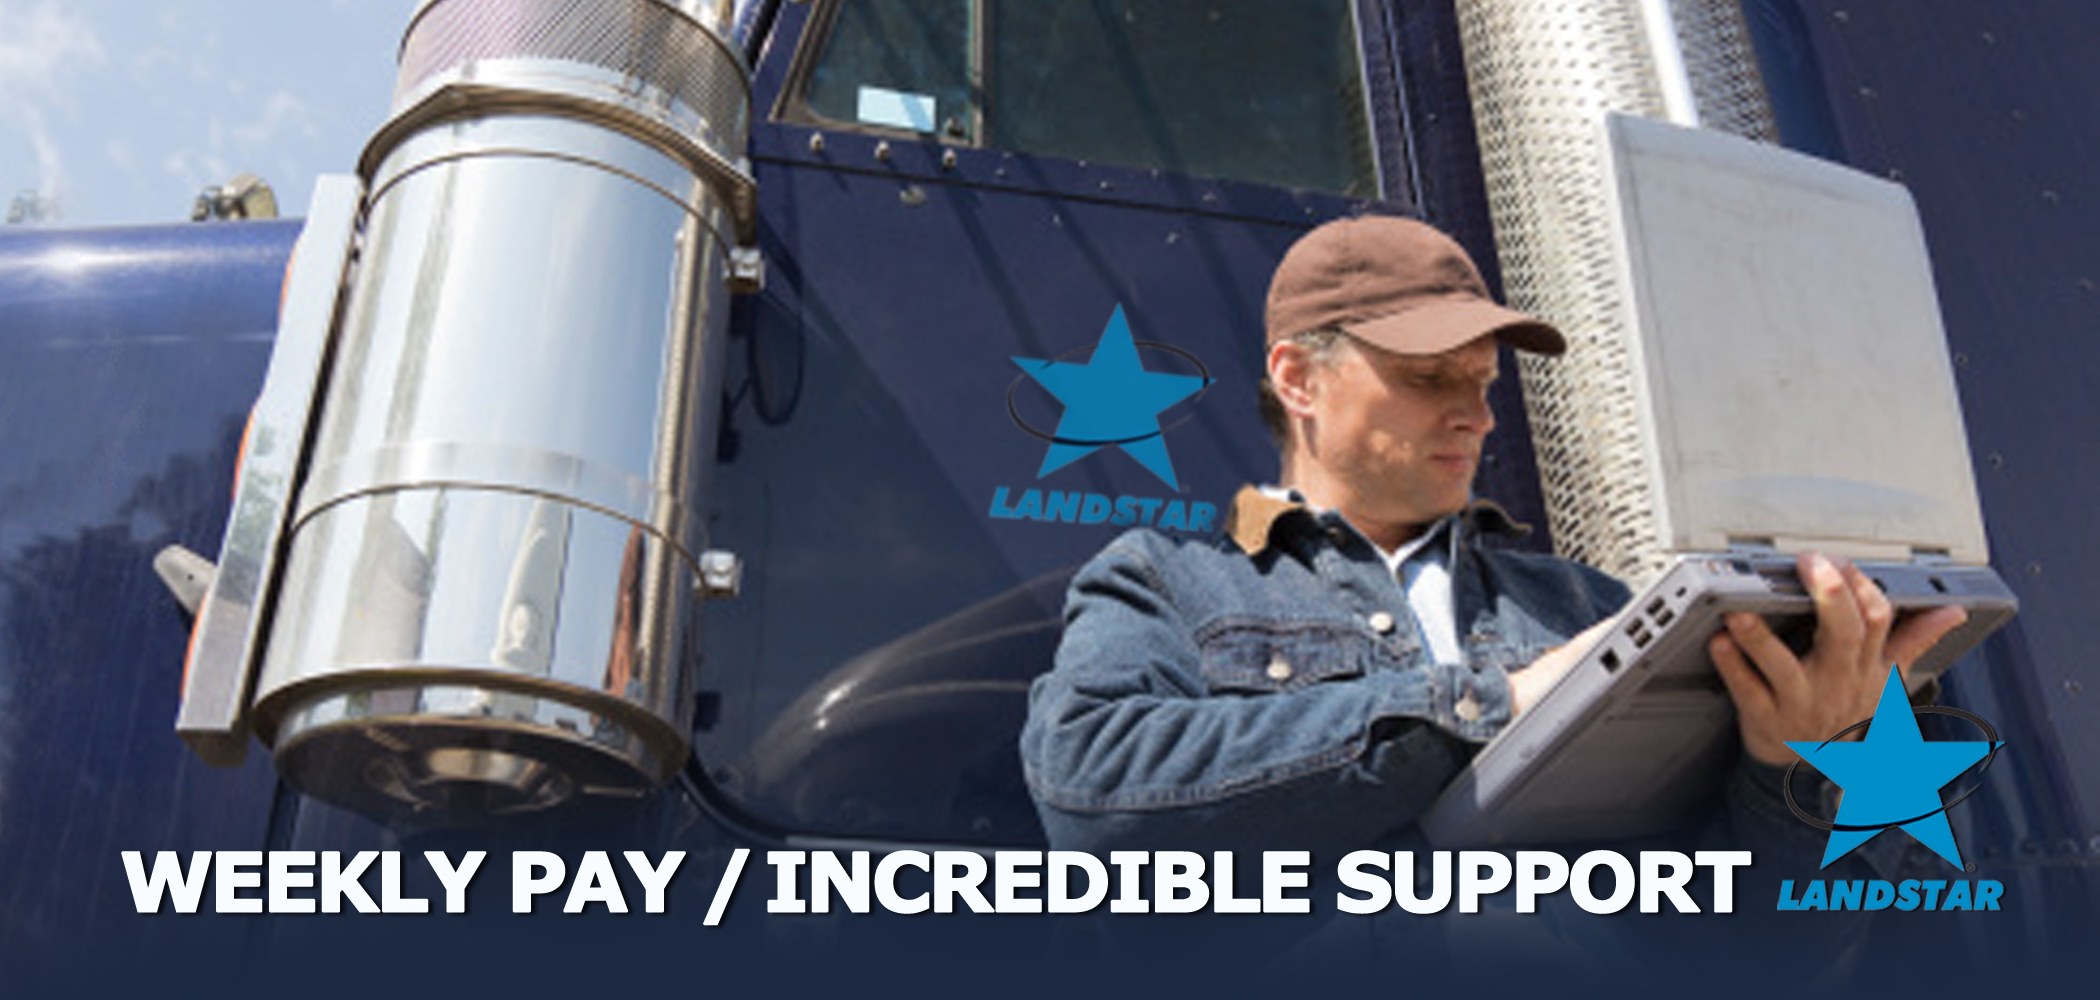 a3-slide-weekly-pay-incredible-support.jpg